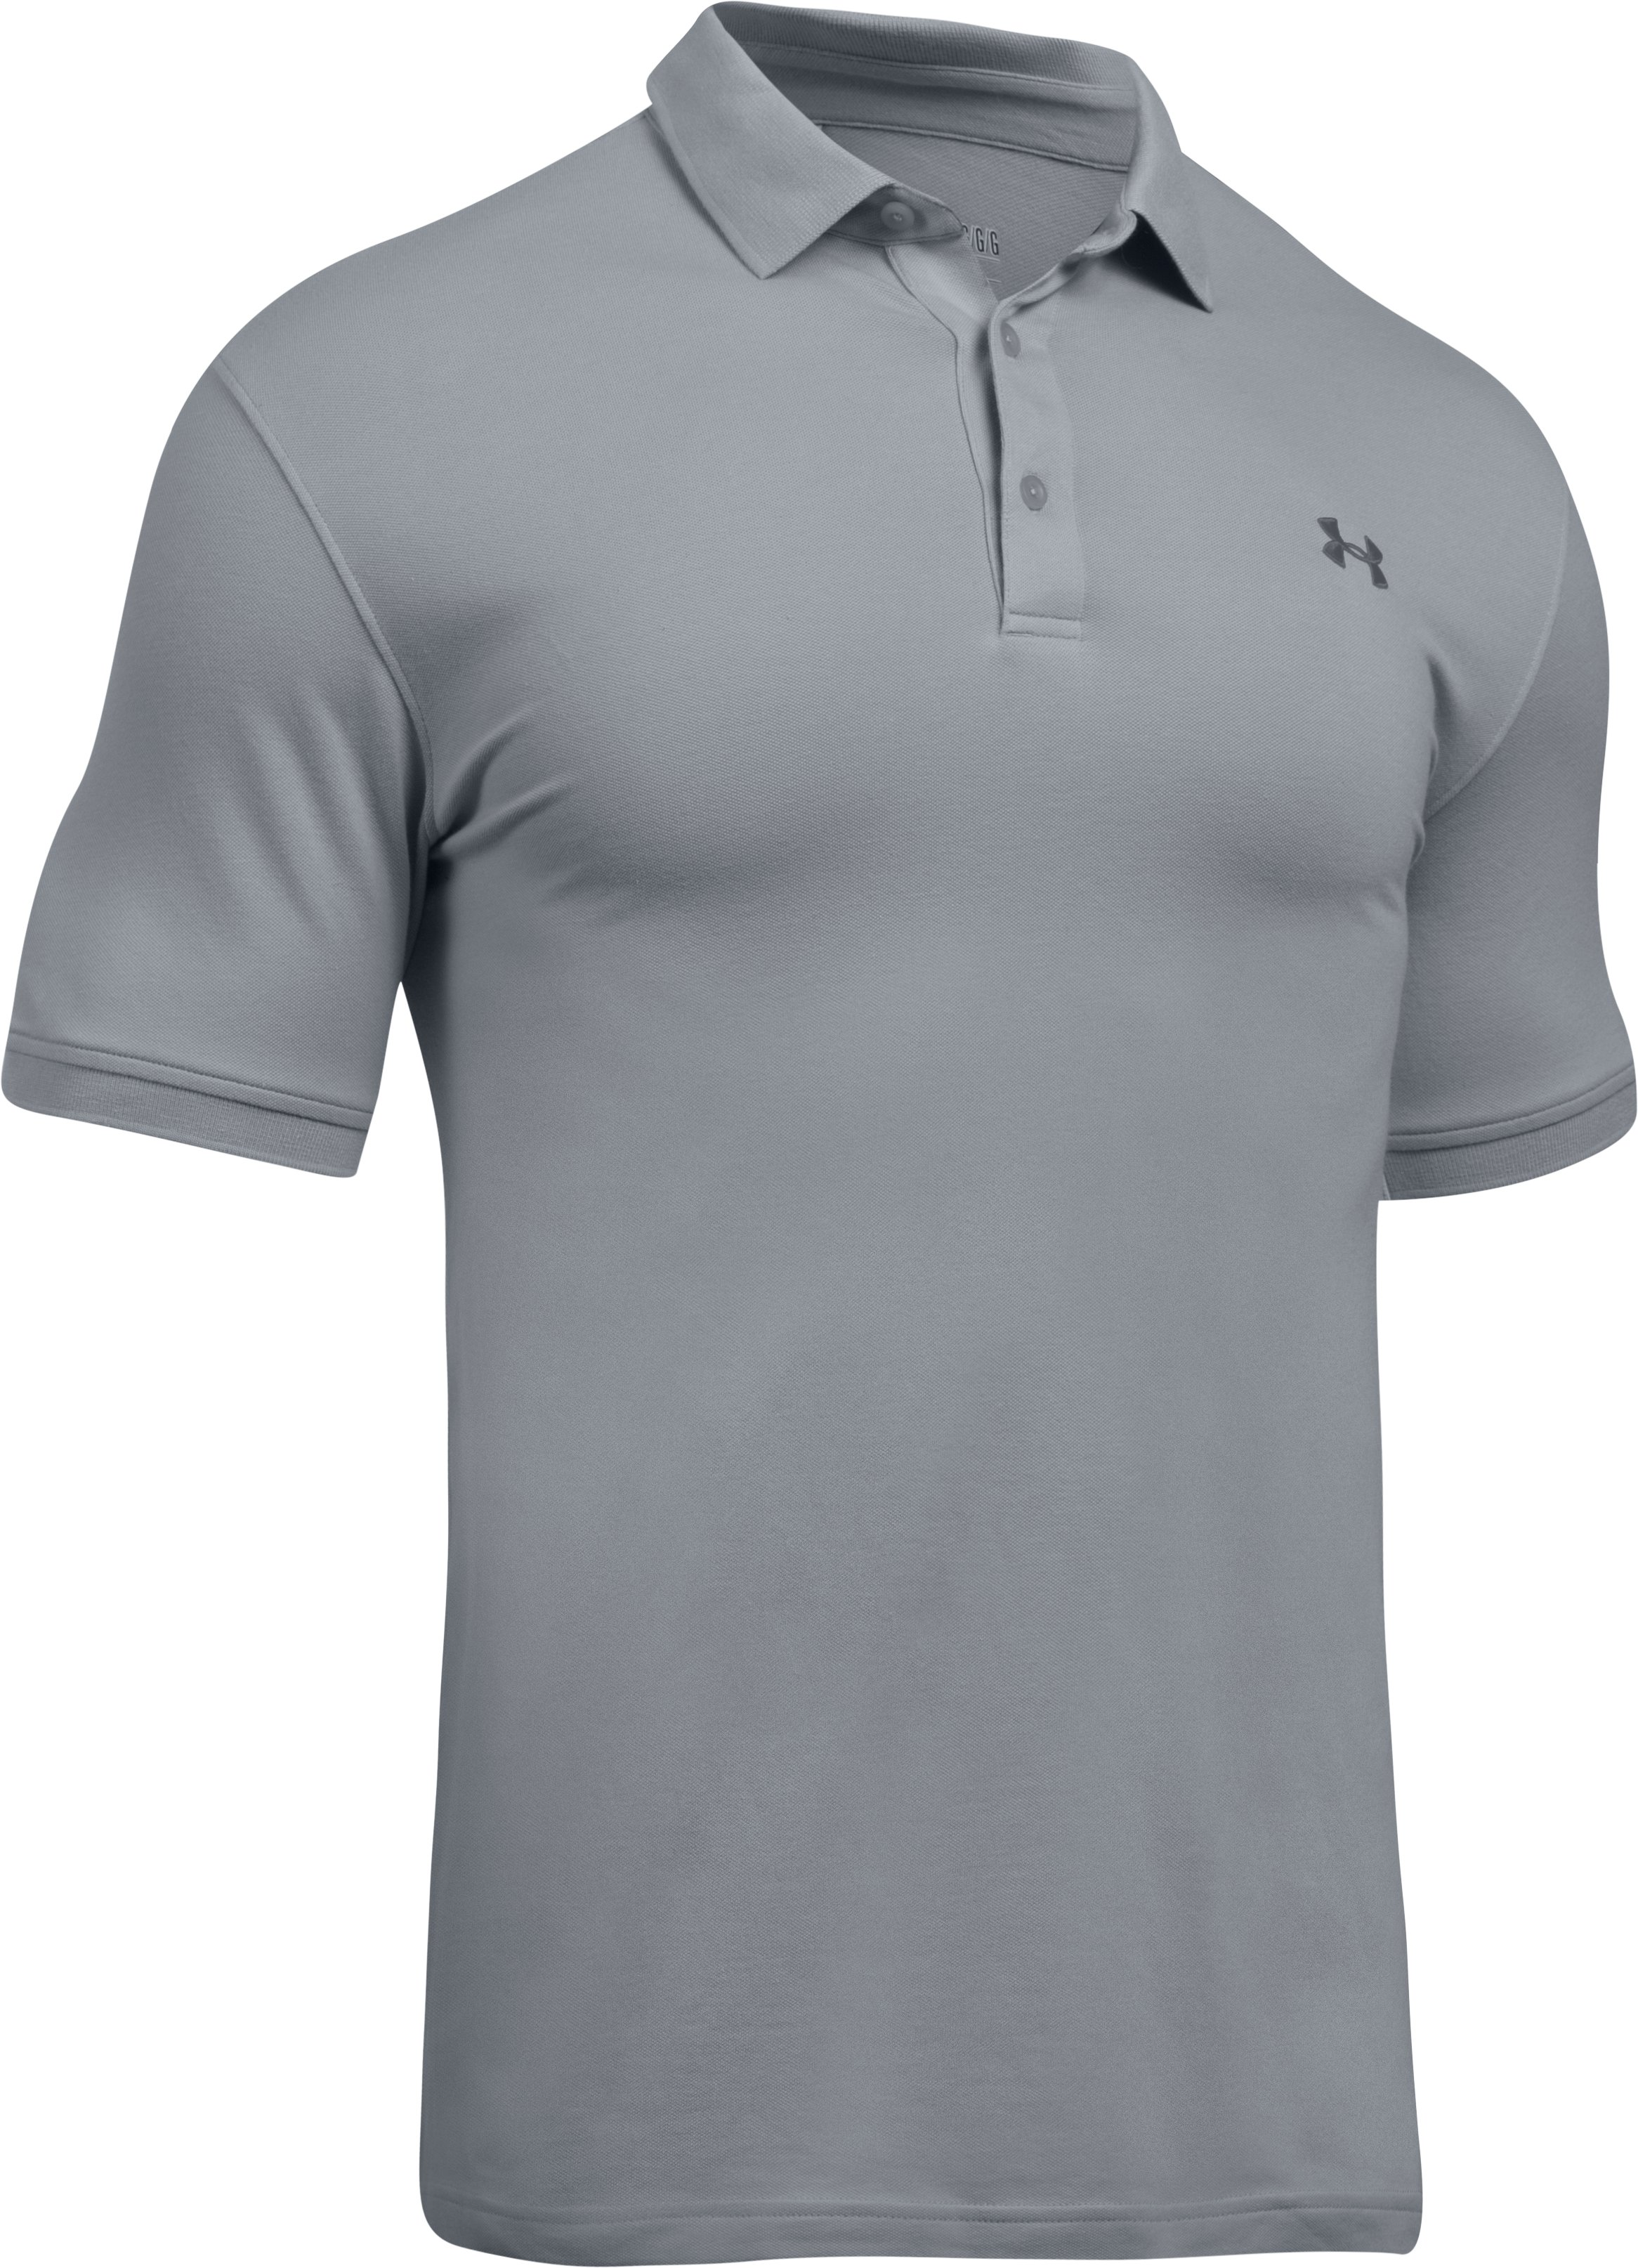 Men's UA Performance Cotton Polo, OVERCAST GRAY, undefined